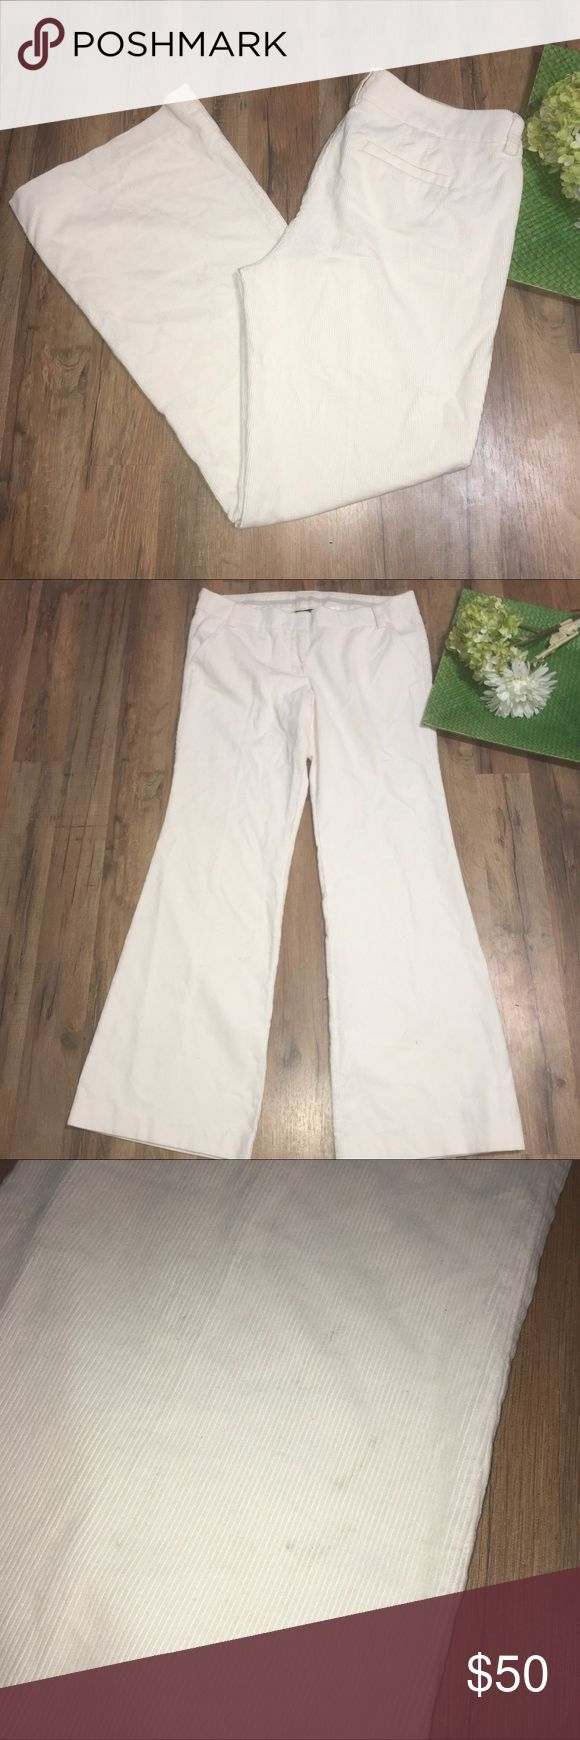 J. CREW NWT City fit luxe cord trouser Waist: 18"